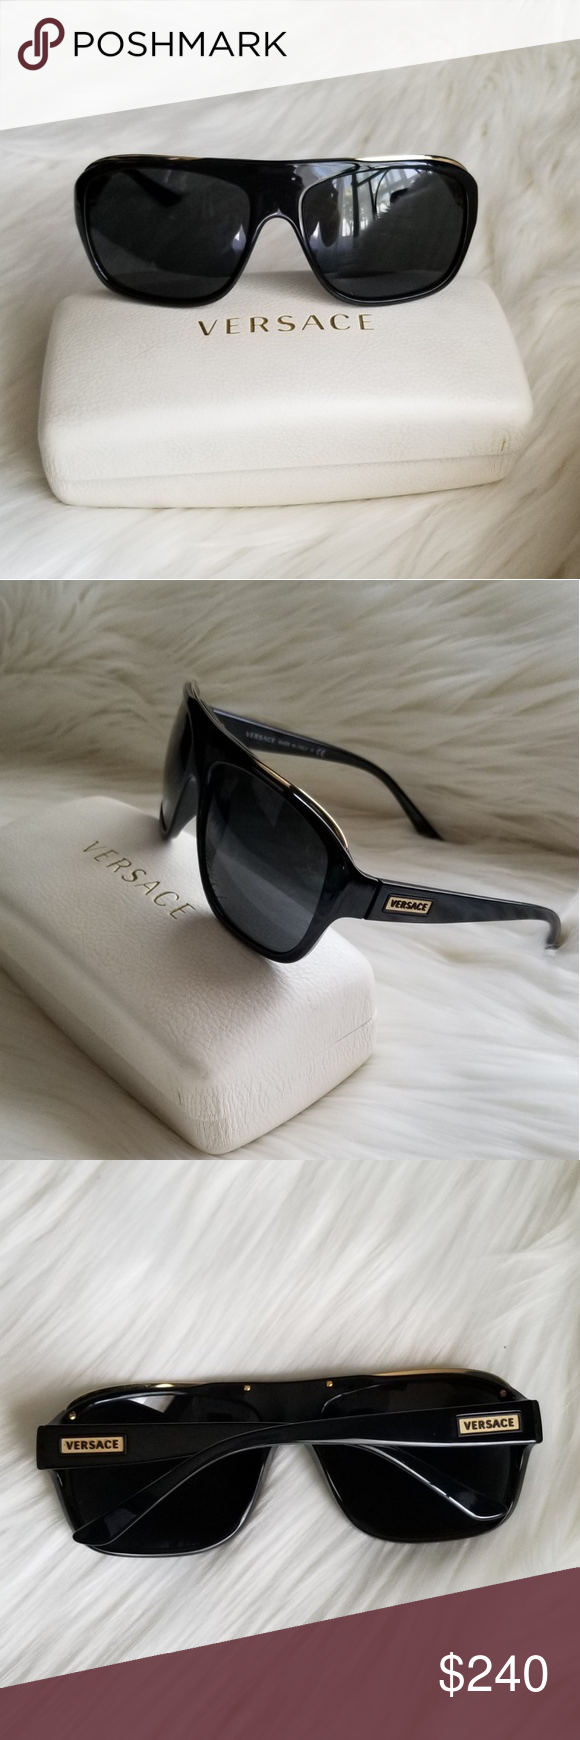 100Authentic No Mod4227 Condition Versace Sunglasses In Mint 76bfYgy